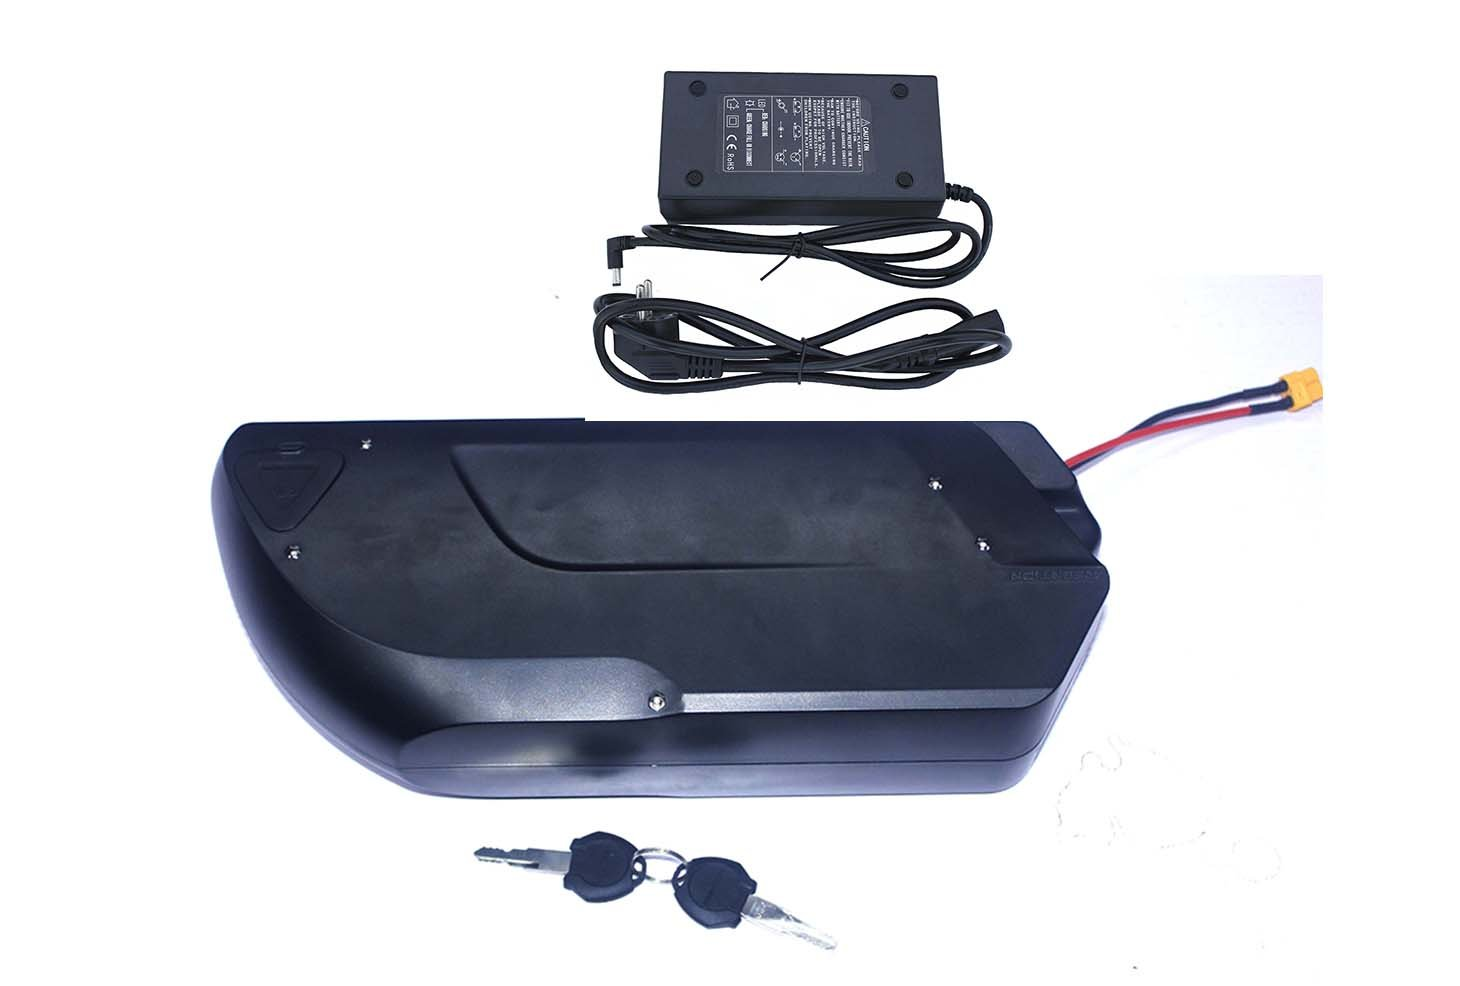 36V9AH-18AH Down Tube Type Li-on Ebike Battery 電動自転車バッテリ for 36V350W-750W Electric Bike Kit Theebikemotor B01N0A1O6K   36V18AH-Panasonic NCR18650PF